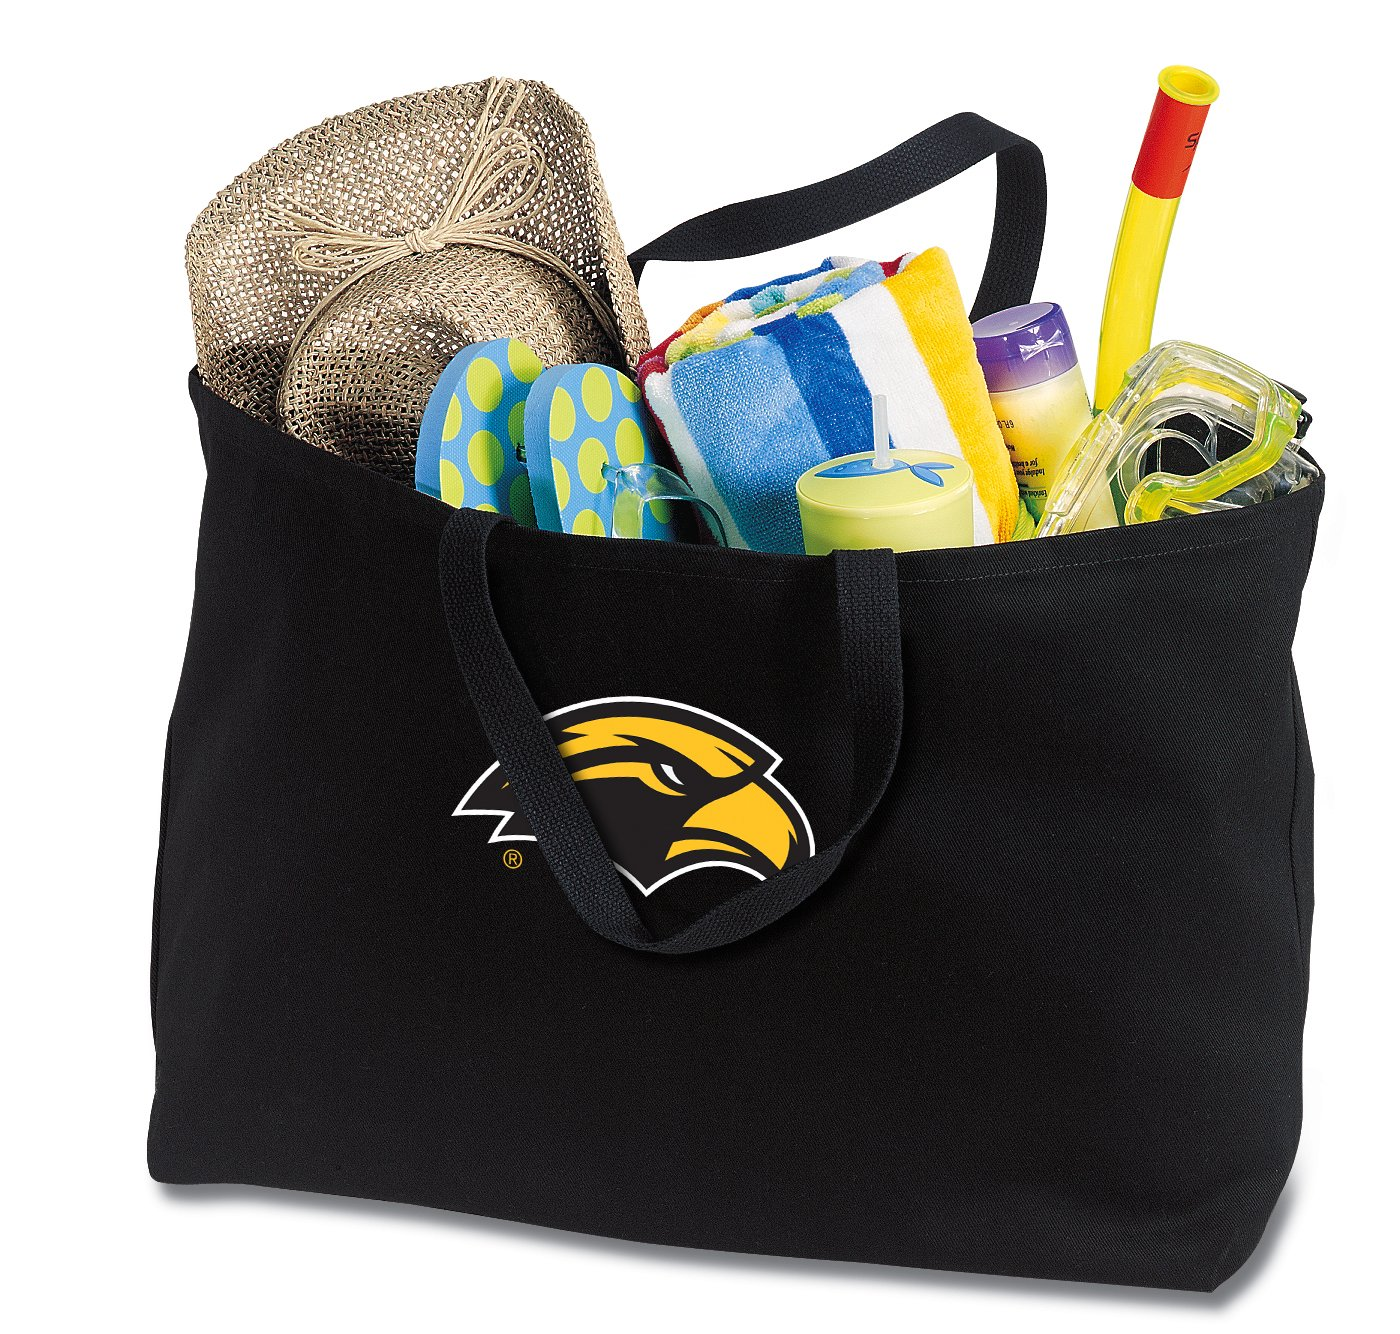 JUMBO USM Tote Bag or Large Canvas Southern Miss Shopping Bag